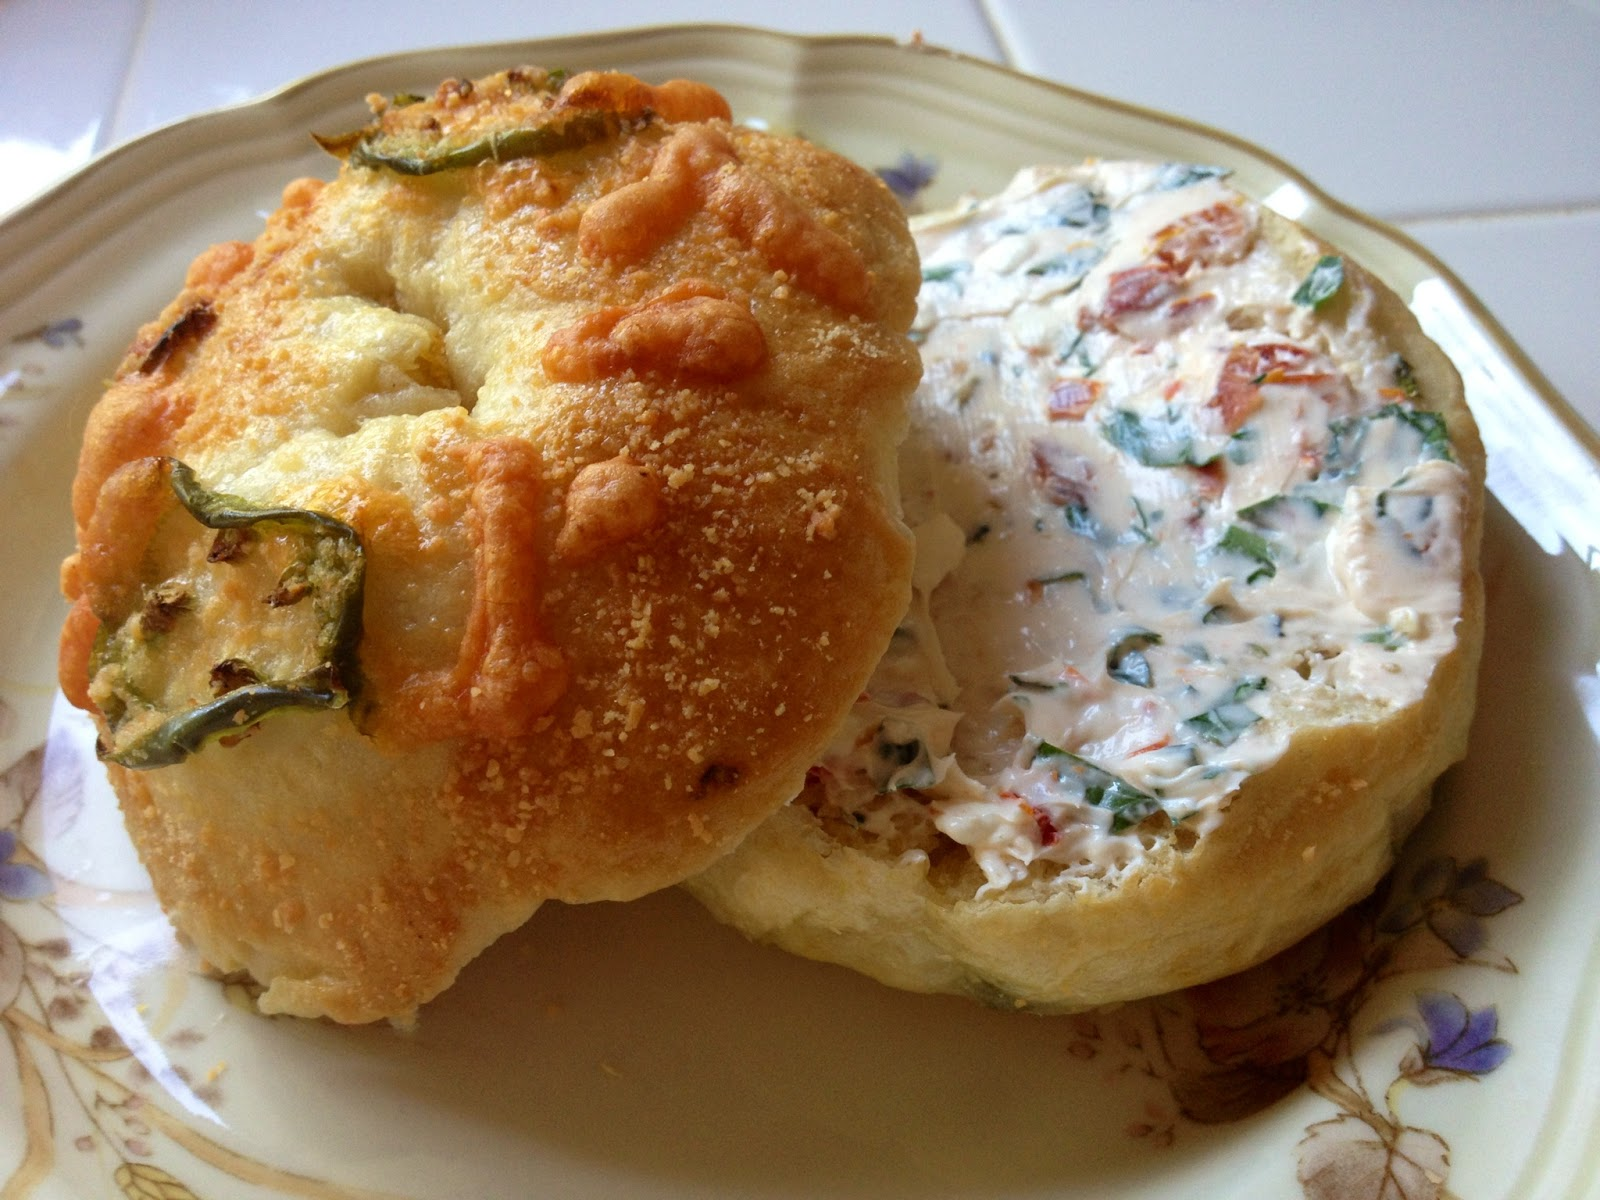 ... cheddar jalapeno bagels w/sun-dried tomato + herb cream cheese spread